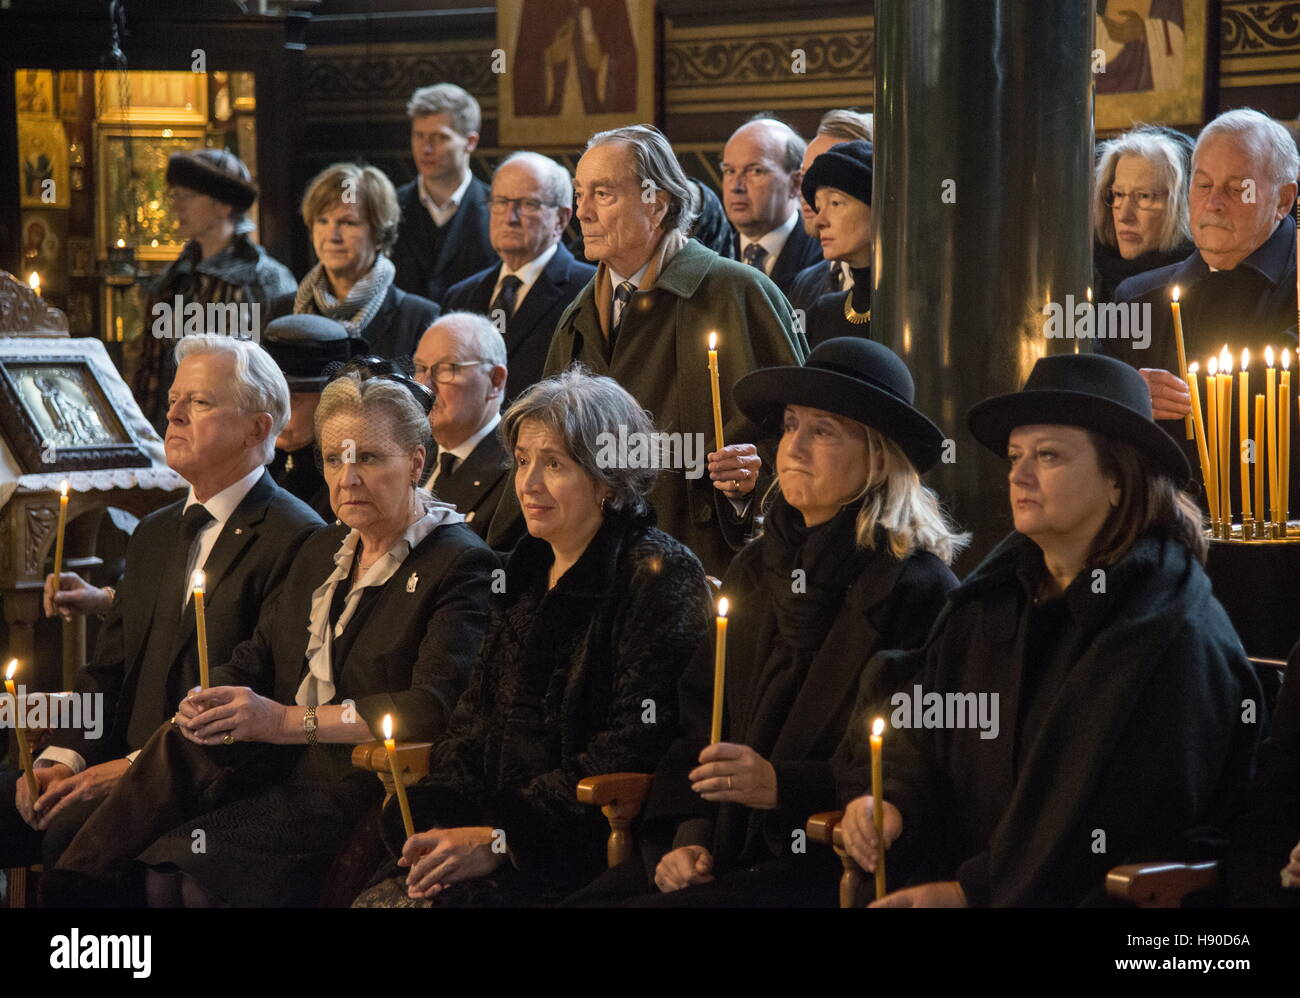 Copenhagen, Denmark. 10th Jan, 2017. Prince Dmitri Romanovich Romanov's widow Dorrit Reventlow (2nd L front) during Stock Photo